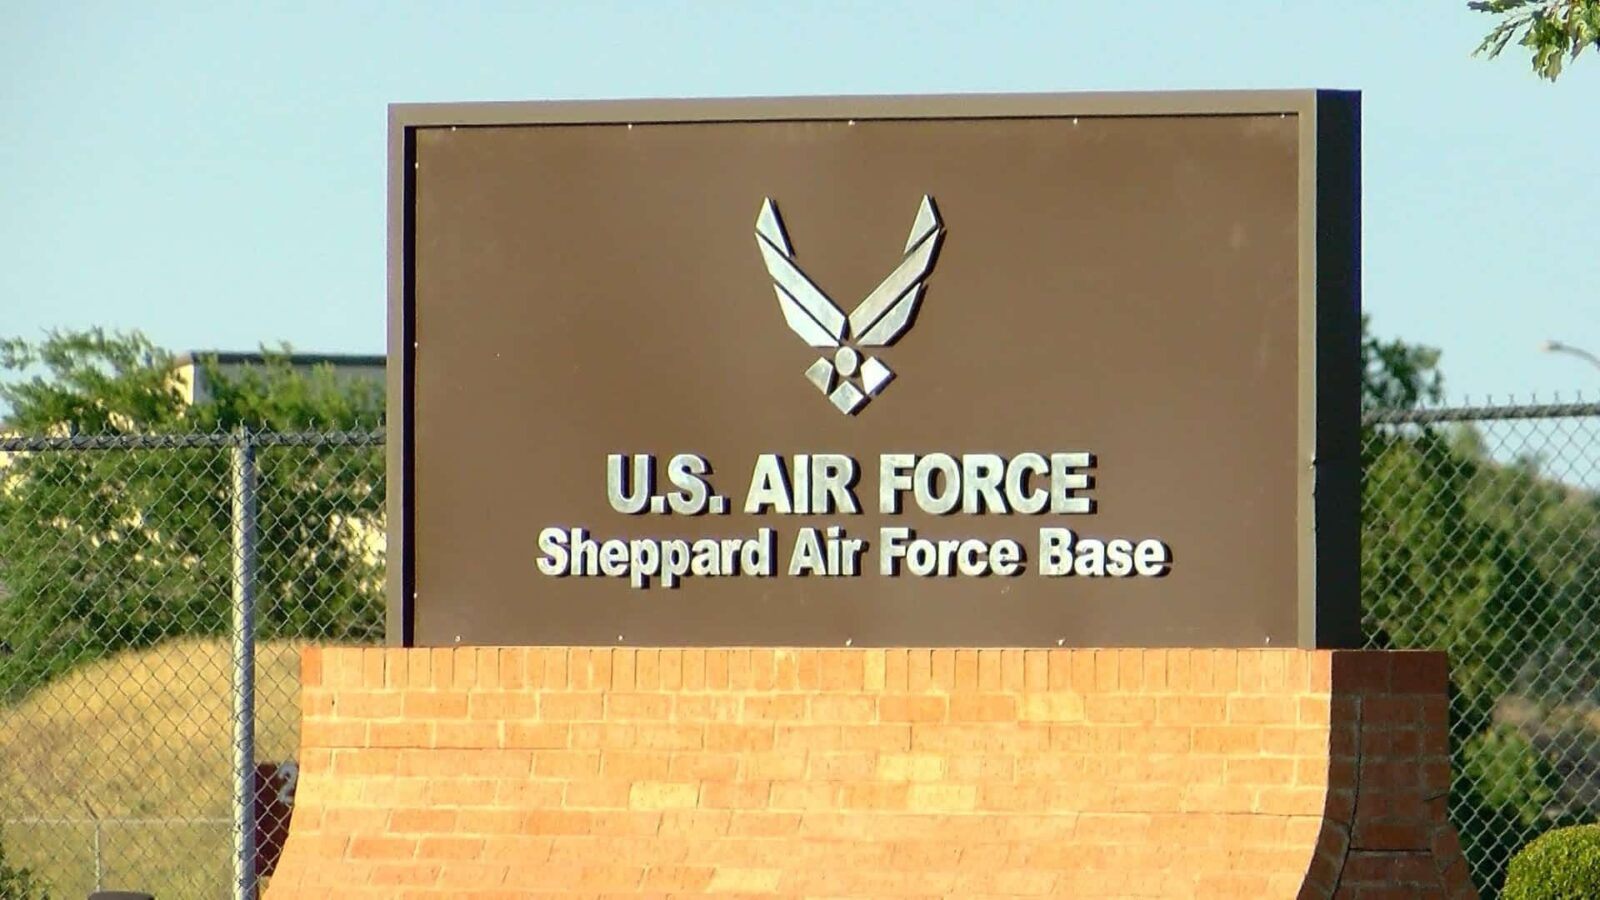 sheppard afb taxi, Sheppard AFB Taxi DFW Airport Transportation, Sheppard AFB Cab Taxi Service, DFW OFFICIAL TAXI SERVICE